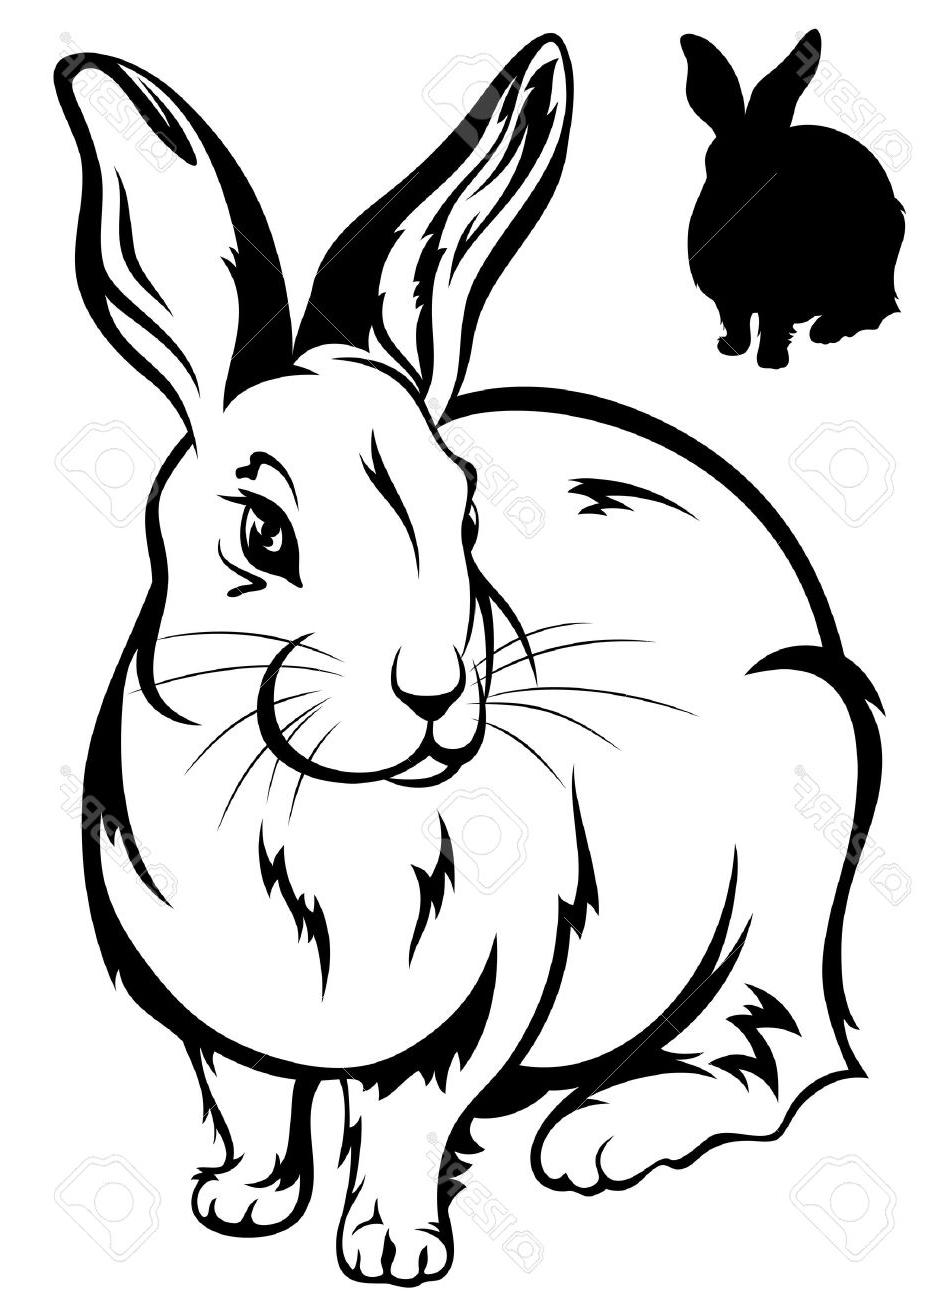 Black And White Rabbit Drawing at GetDrawings | Free download (950 x 1300 Pixel)